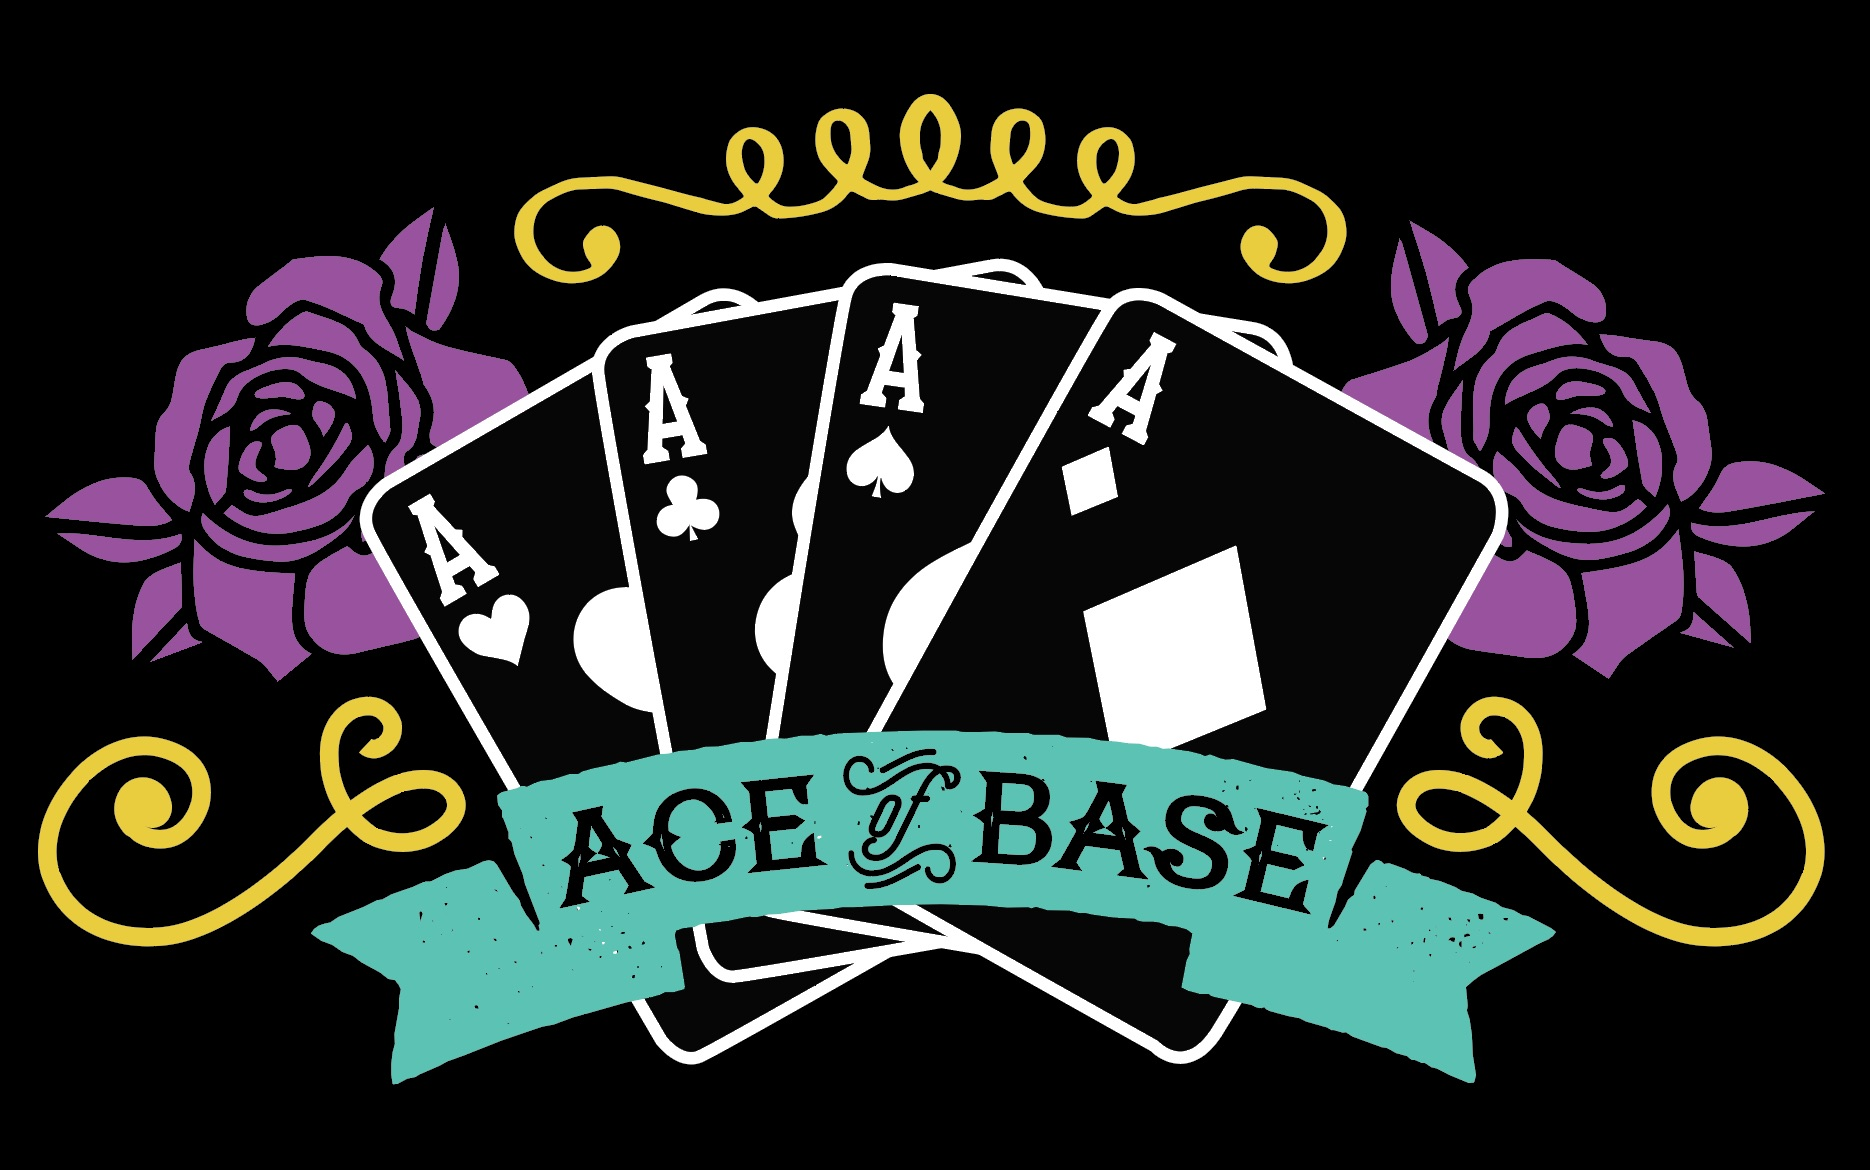 4 Ace of Base_AO.jpg